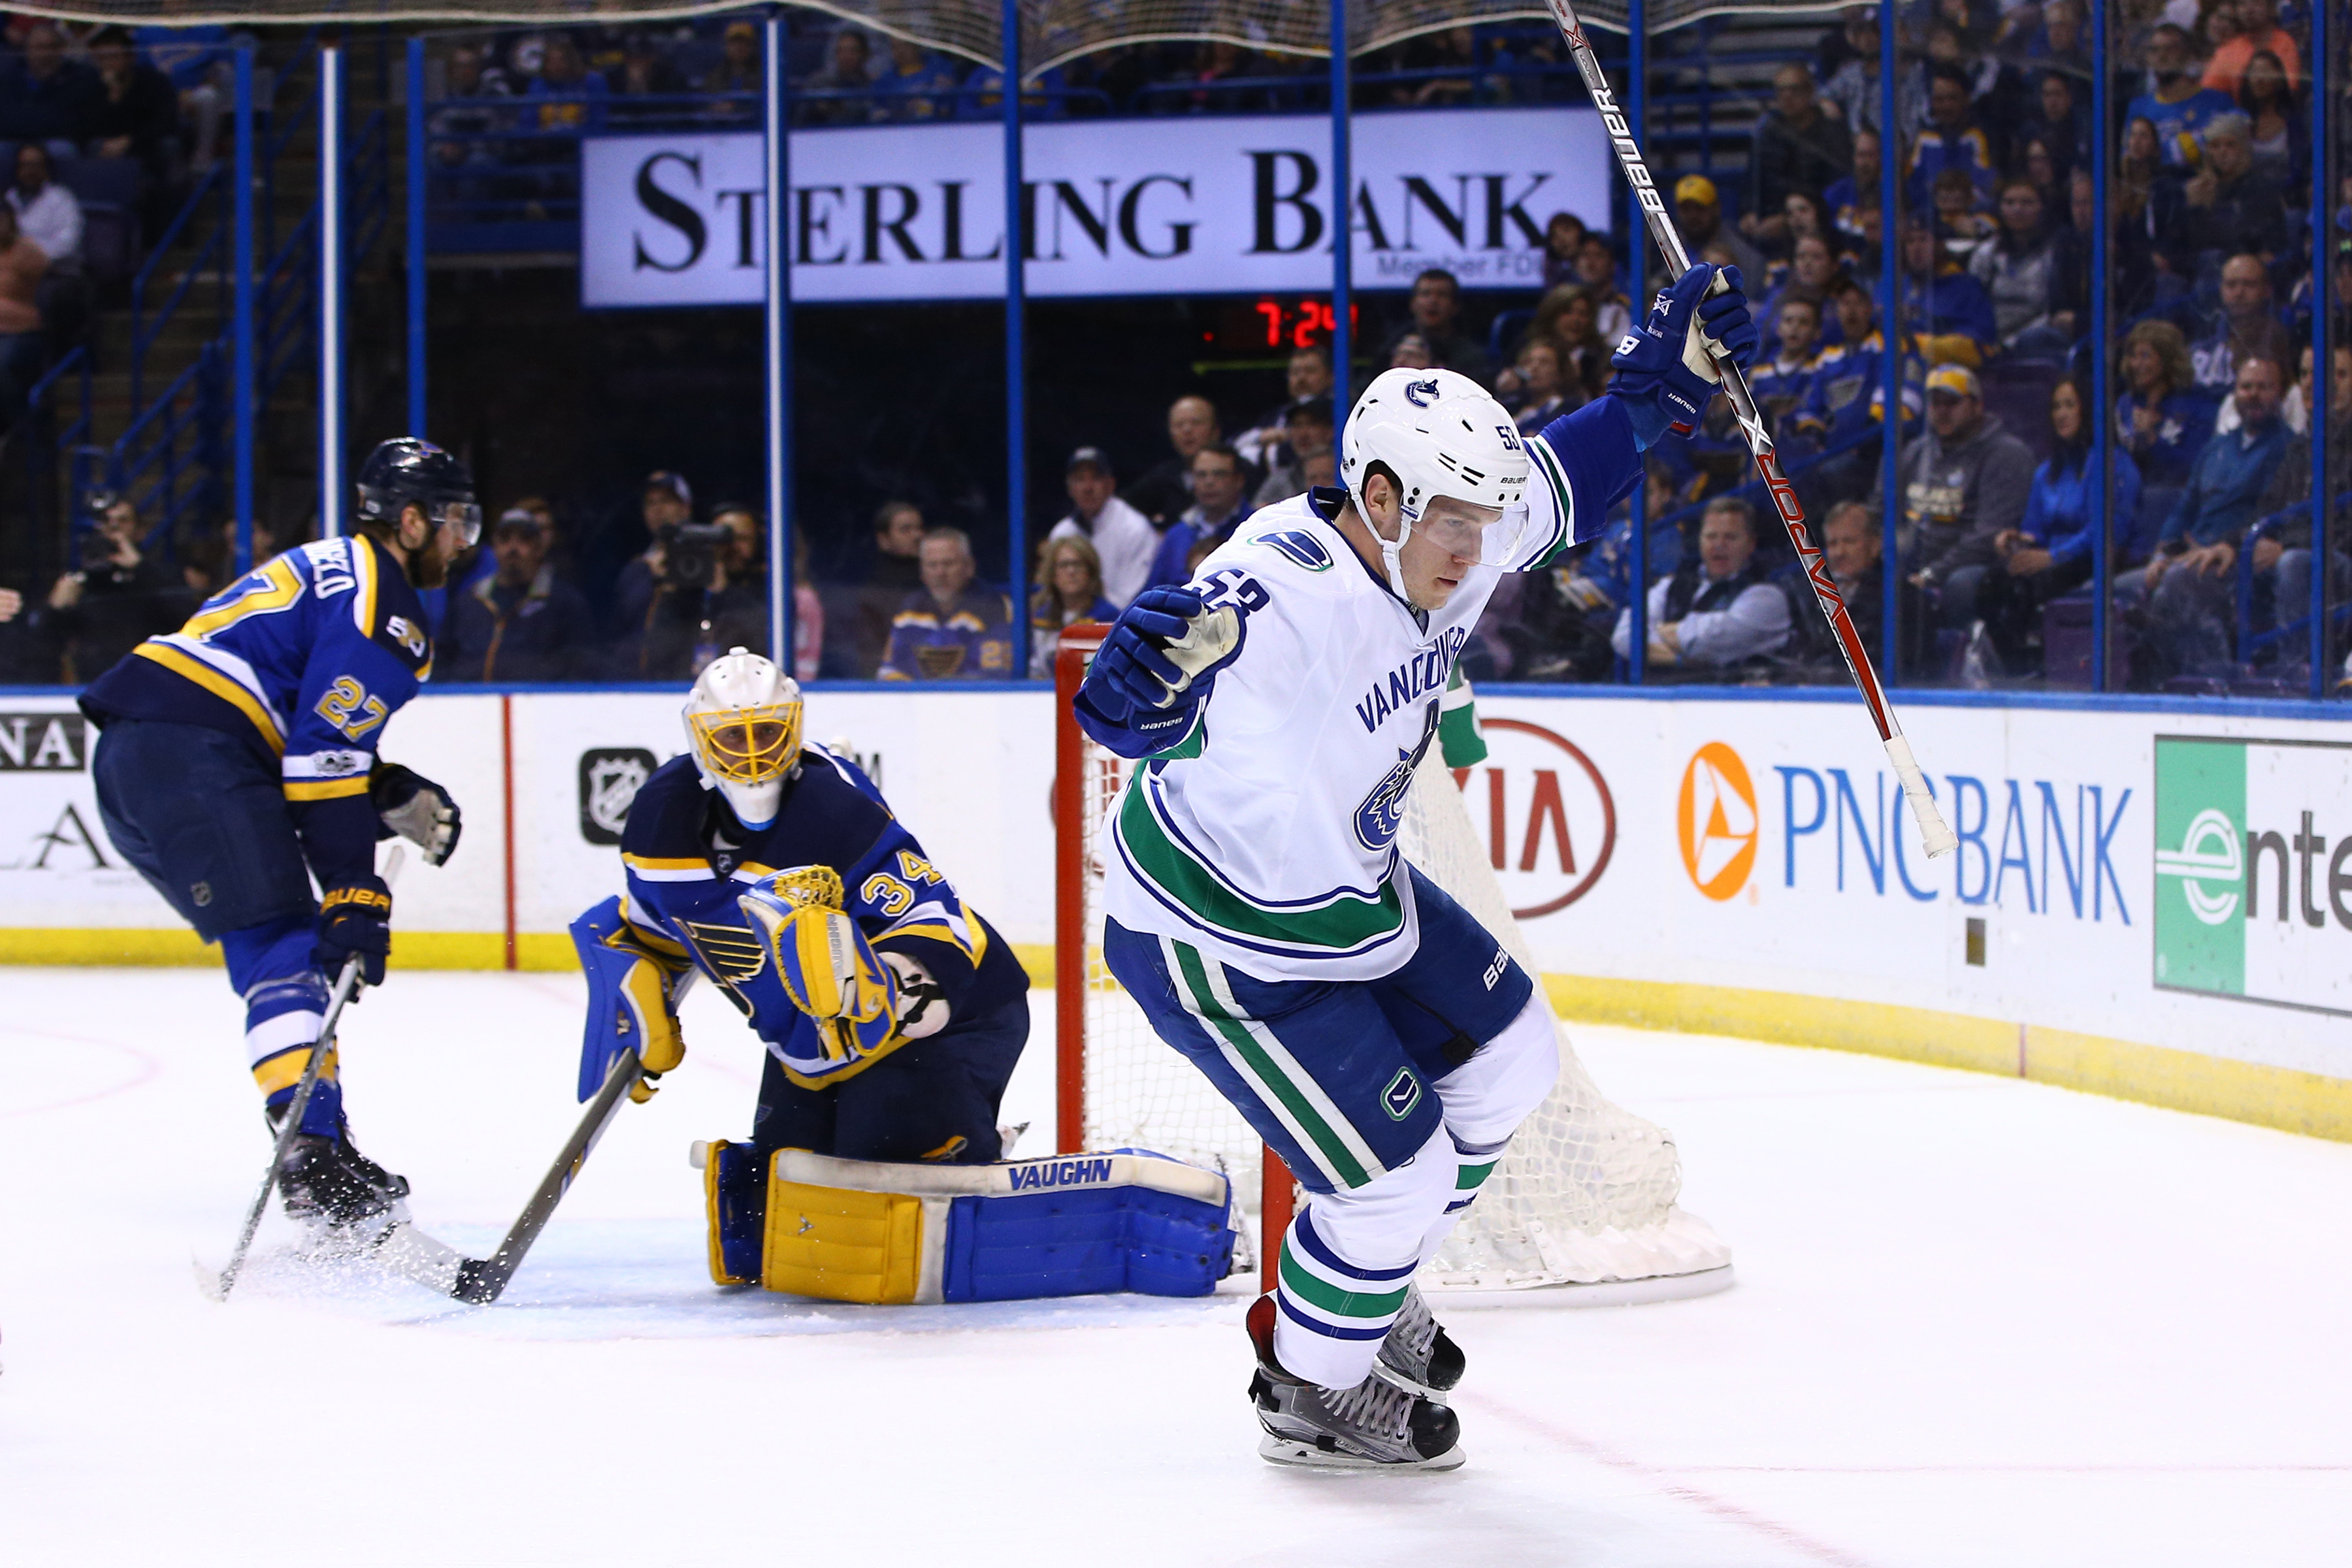 9881236-nhl-vancouver-canucks-at-st.-louis-blues-1